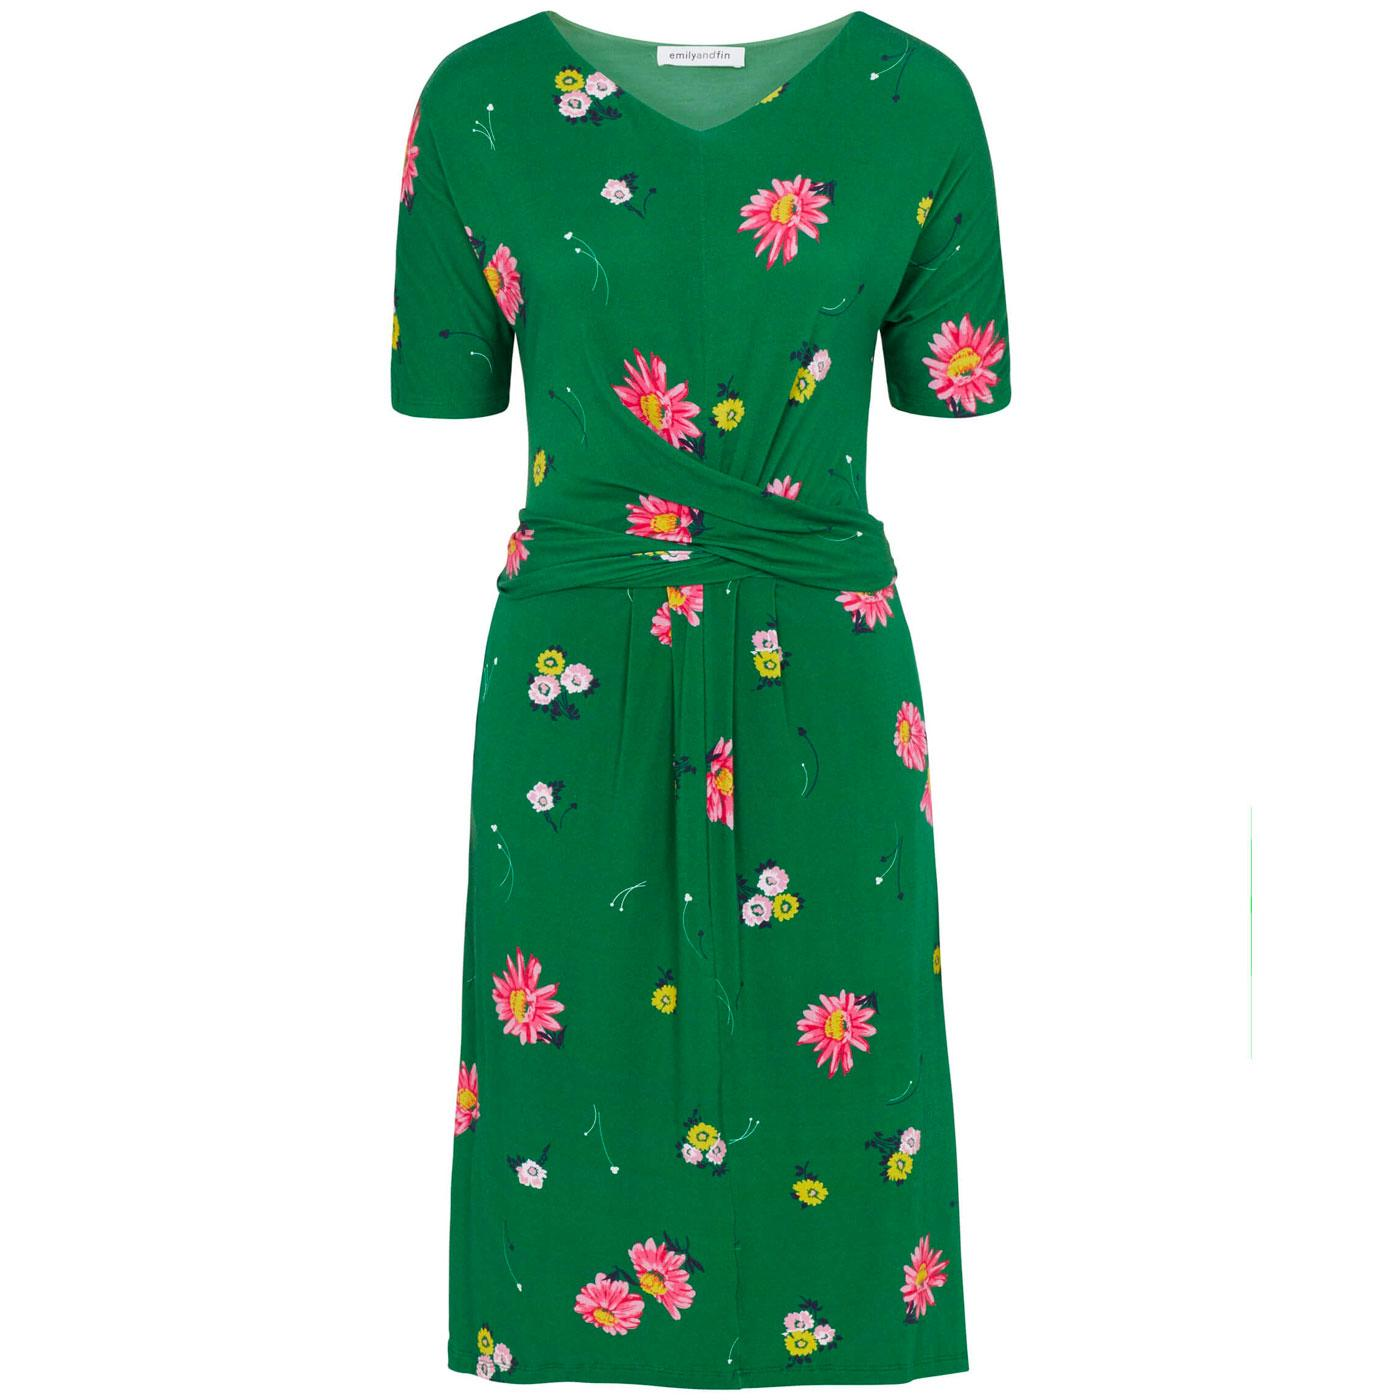 Mimi EMILY & FIN Retro Floral Midi Dress GREEN